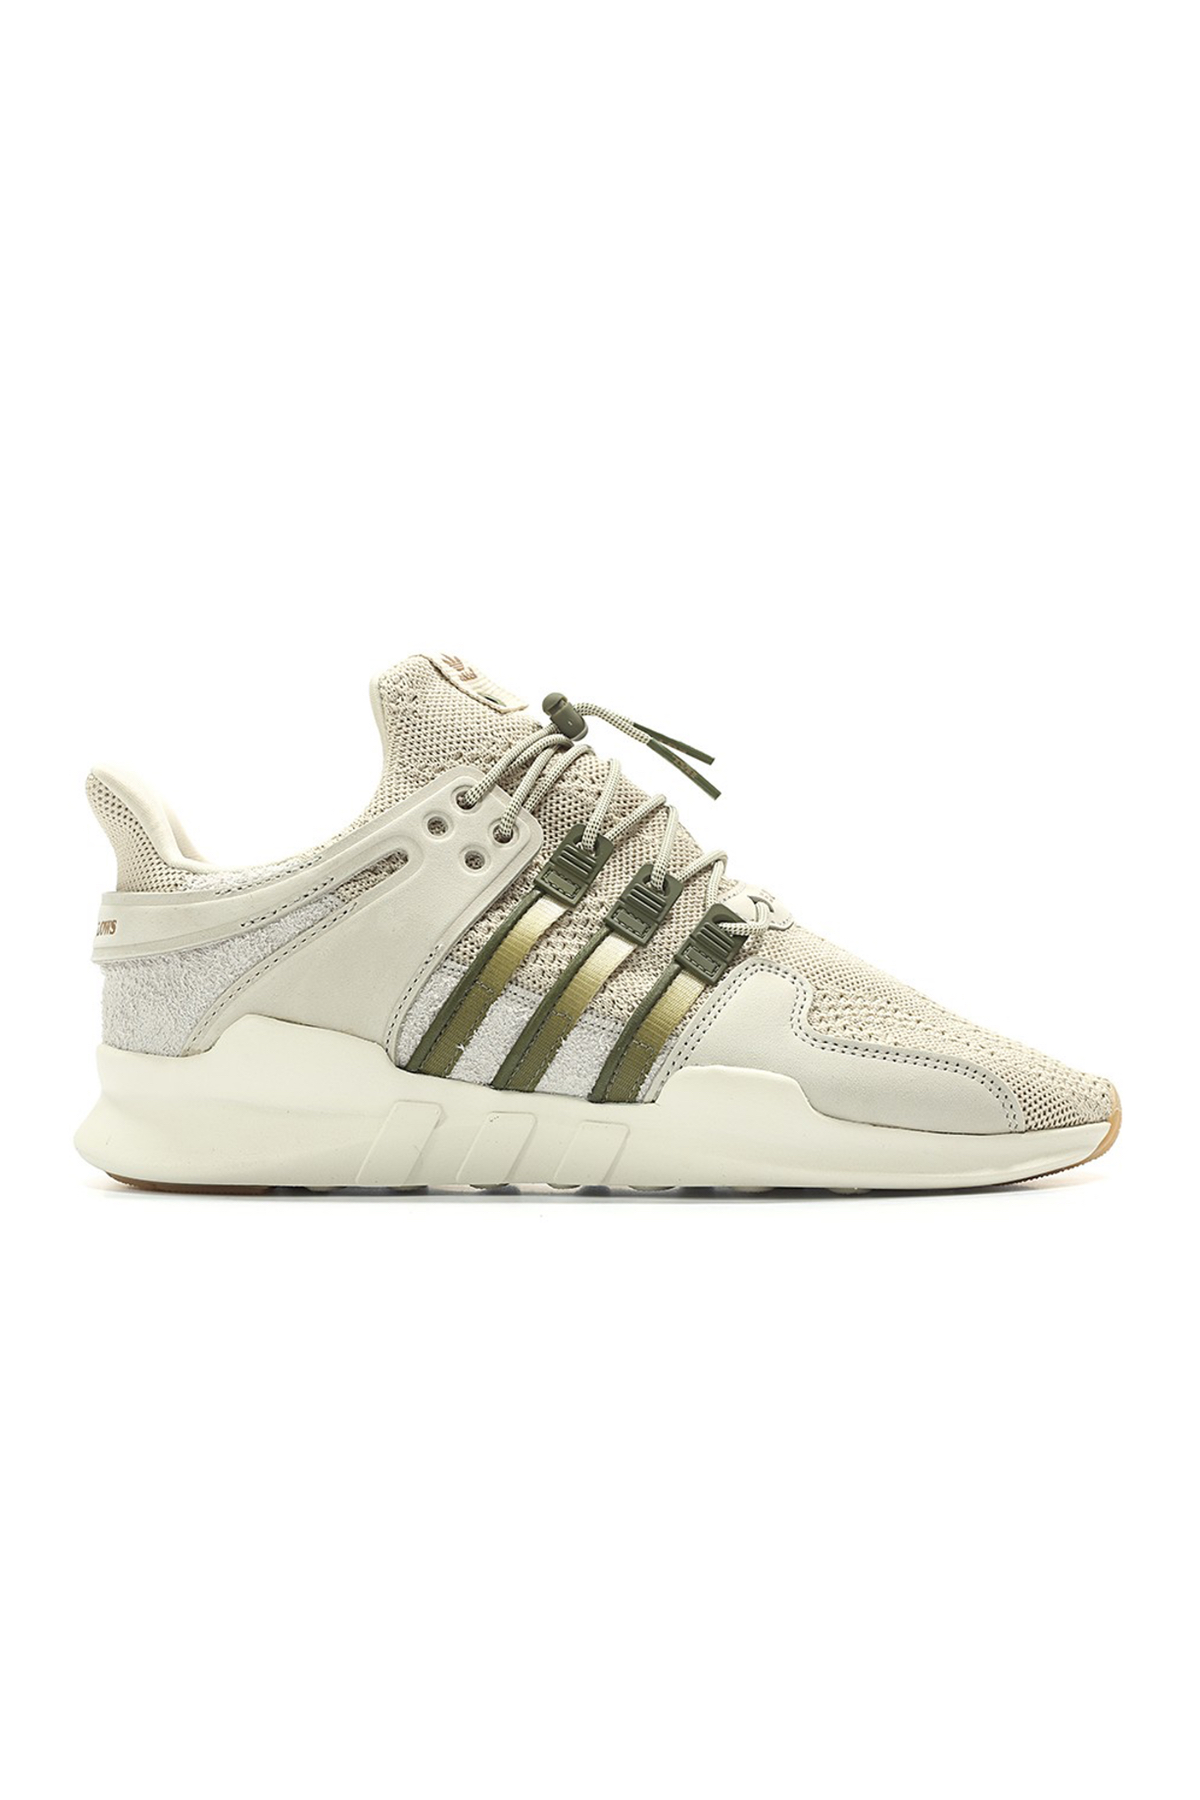 Кроссовки adidas Consortium x Highs and Lows EQT Support ADV - Интернет-магазин  КМ20 7e113da25b2